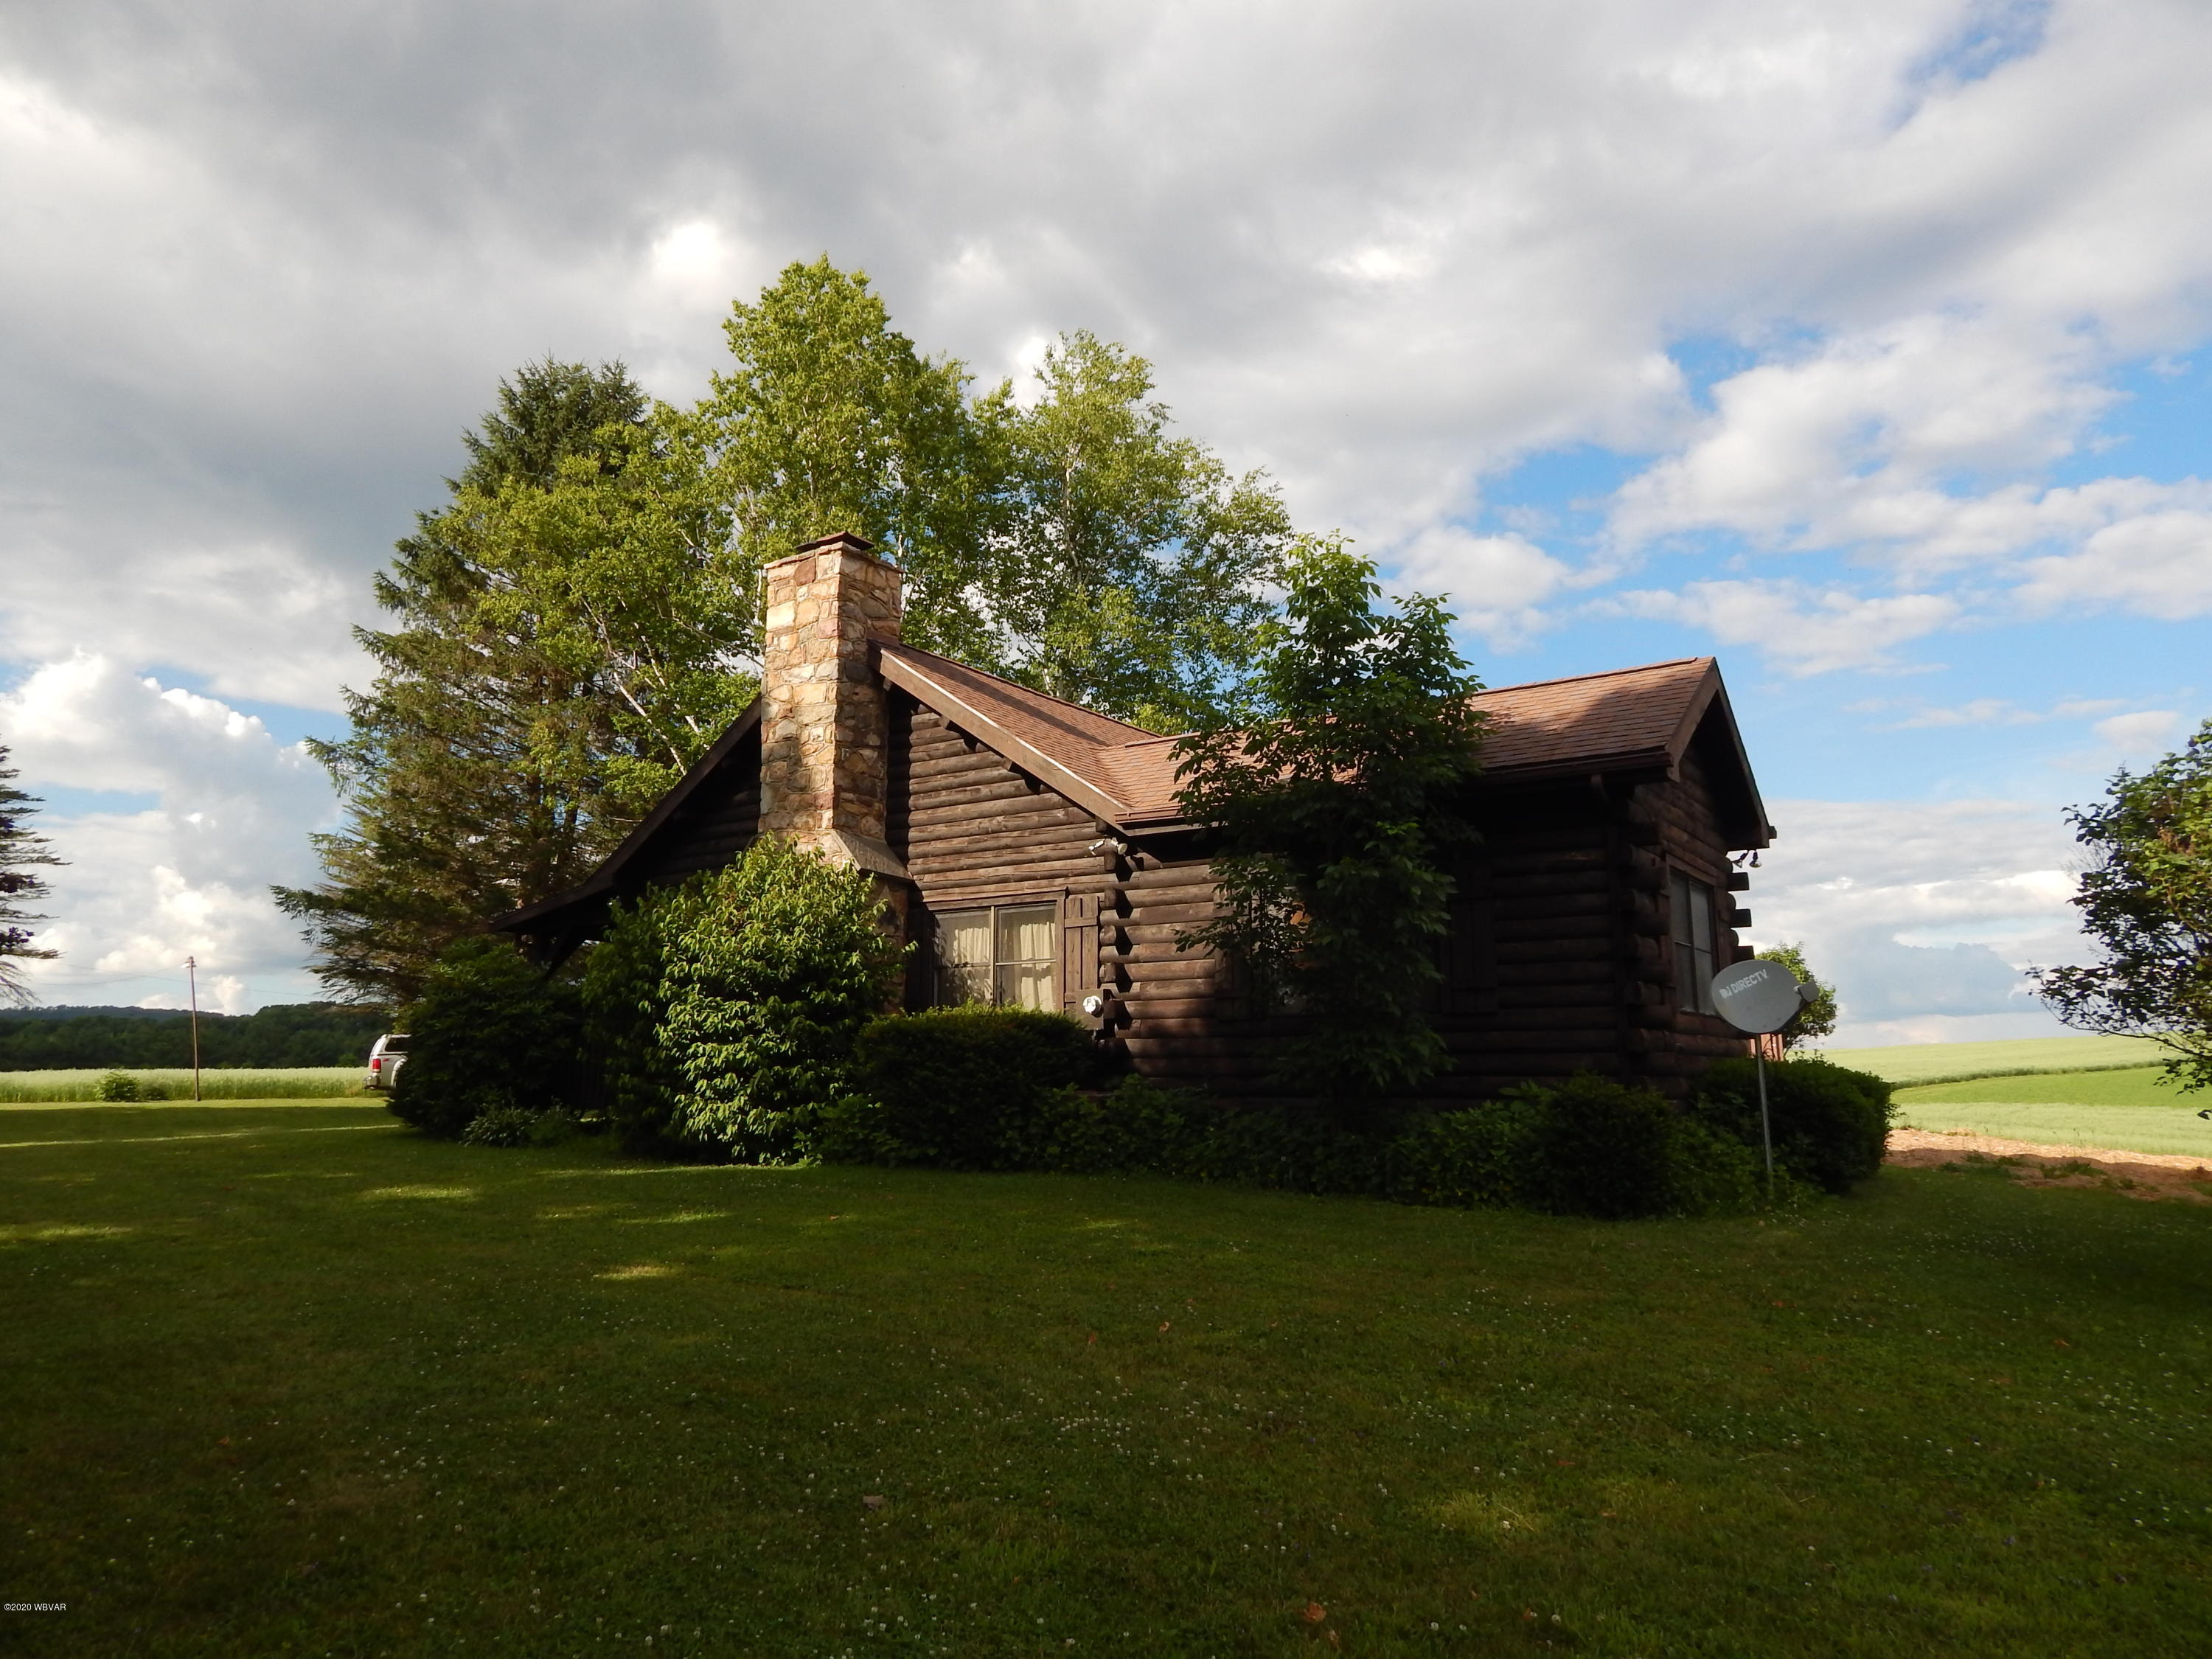 5565 RT 184 HIGHWAY, Trout Run, PA 17771, 2 Bedrooms Bedrooms, ,1 BathroomBathrooms,Residential,For sale,RT 184,WB-89101